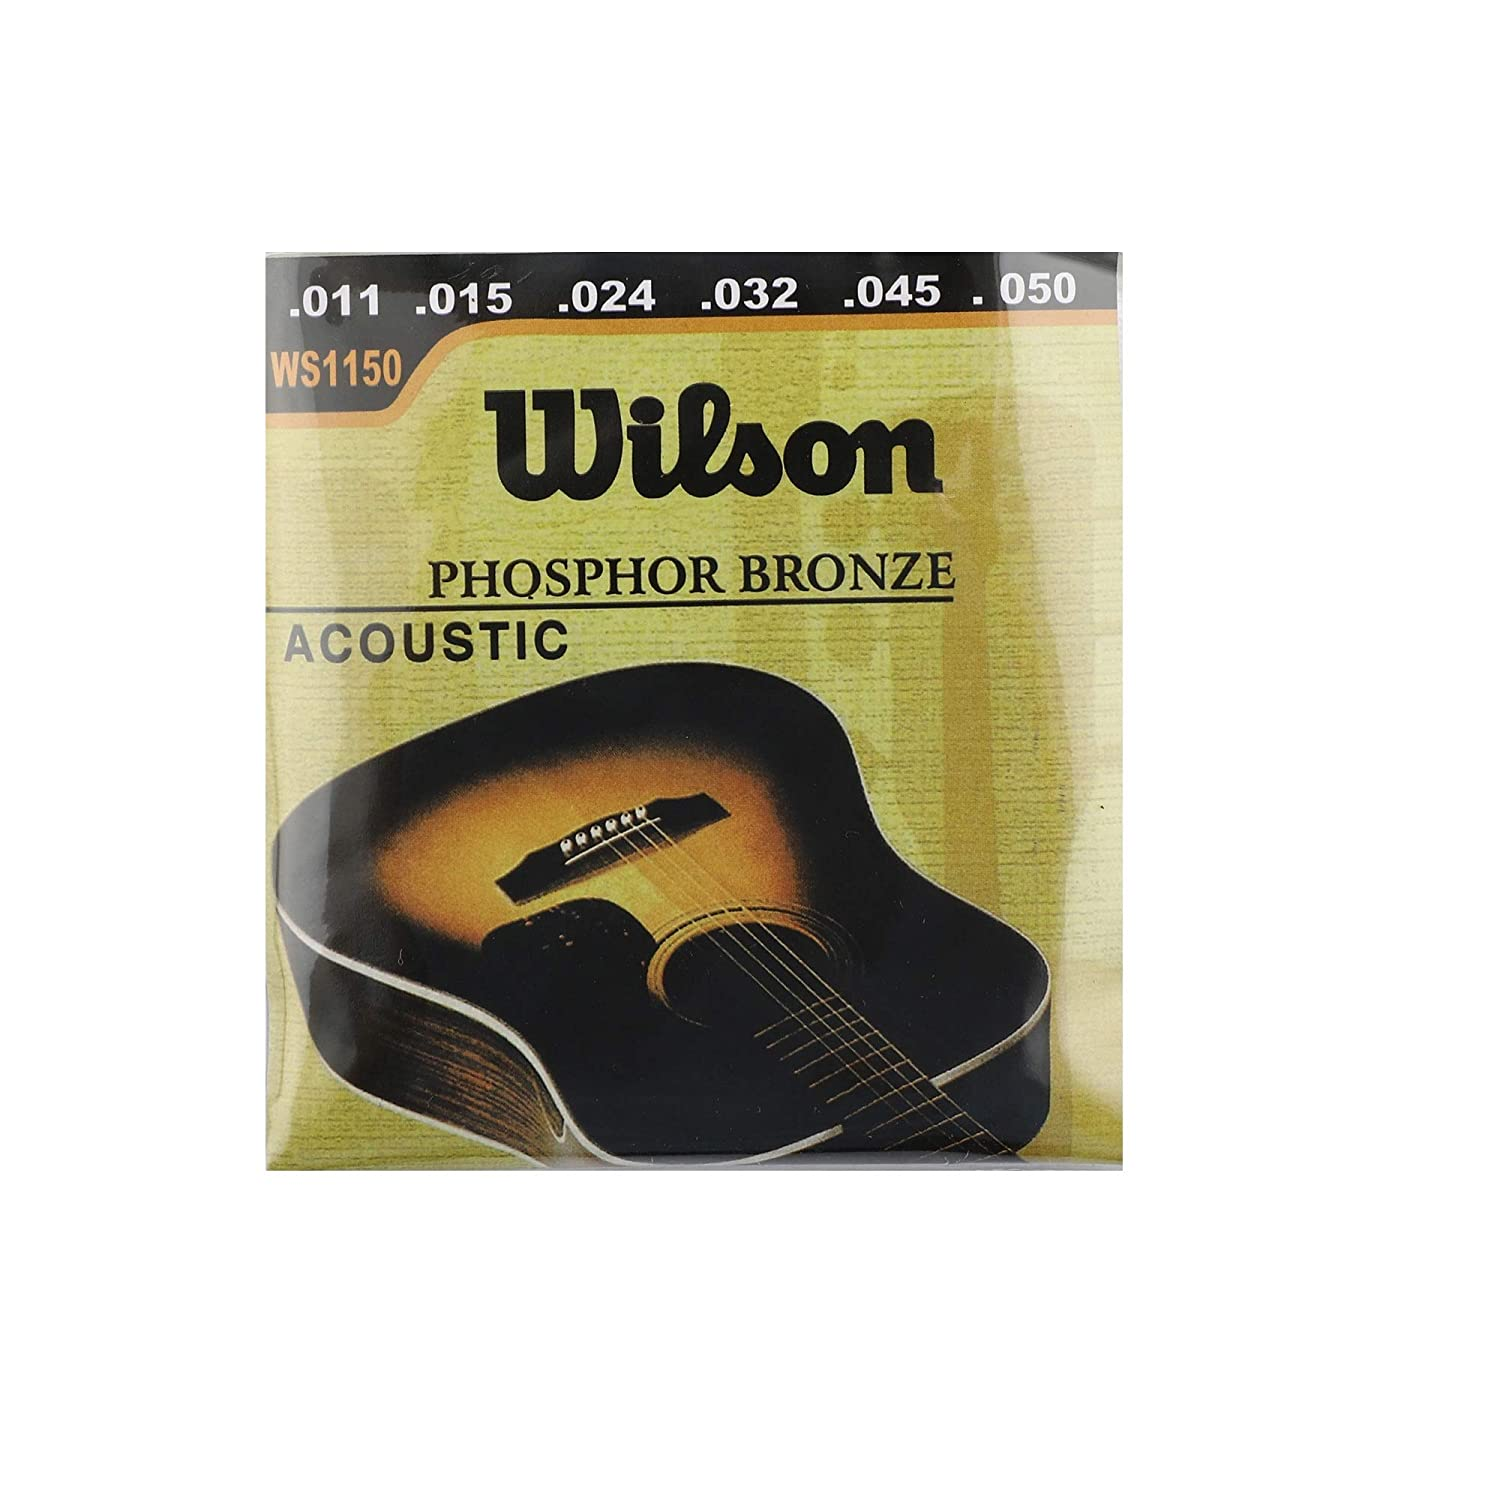 ketostics Wilson guitar string set acoustic phosphor bronze for acoustic guitars